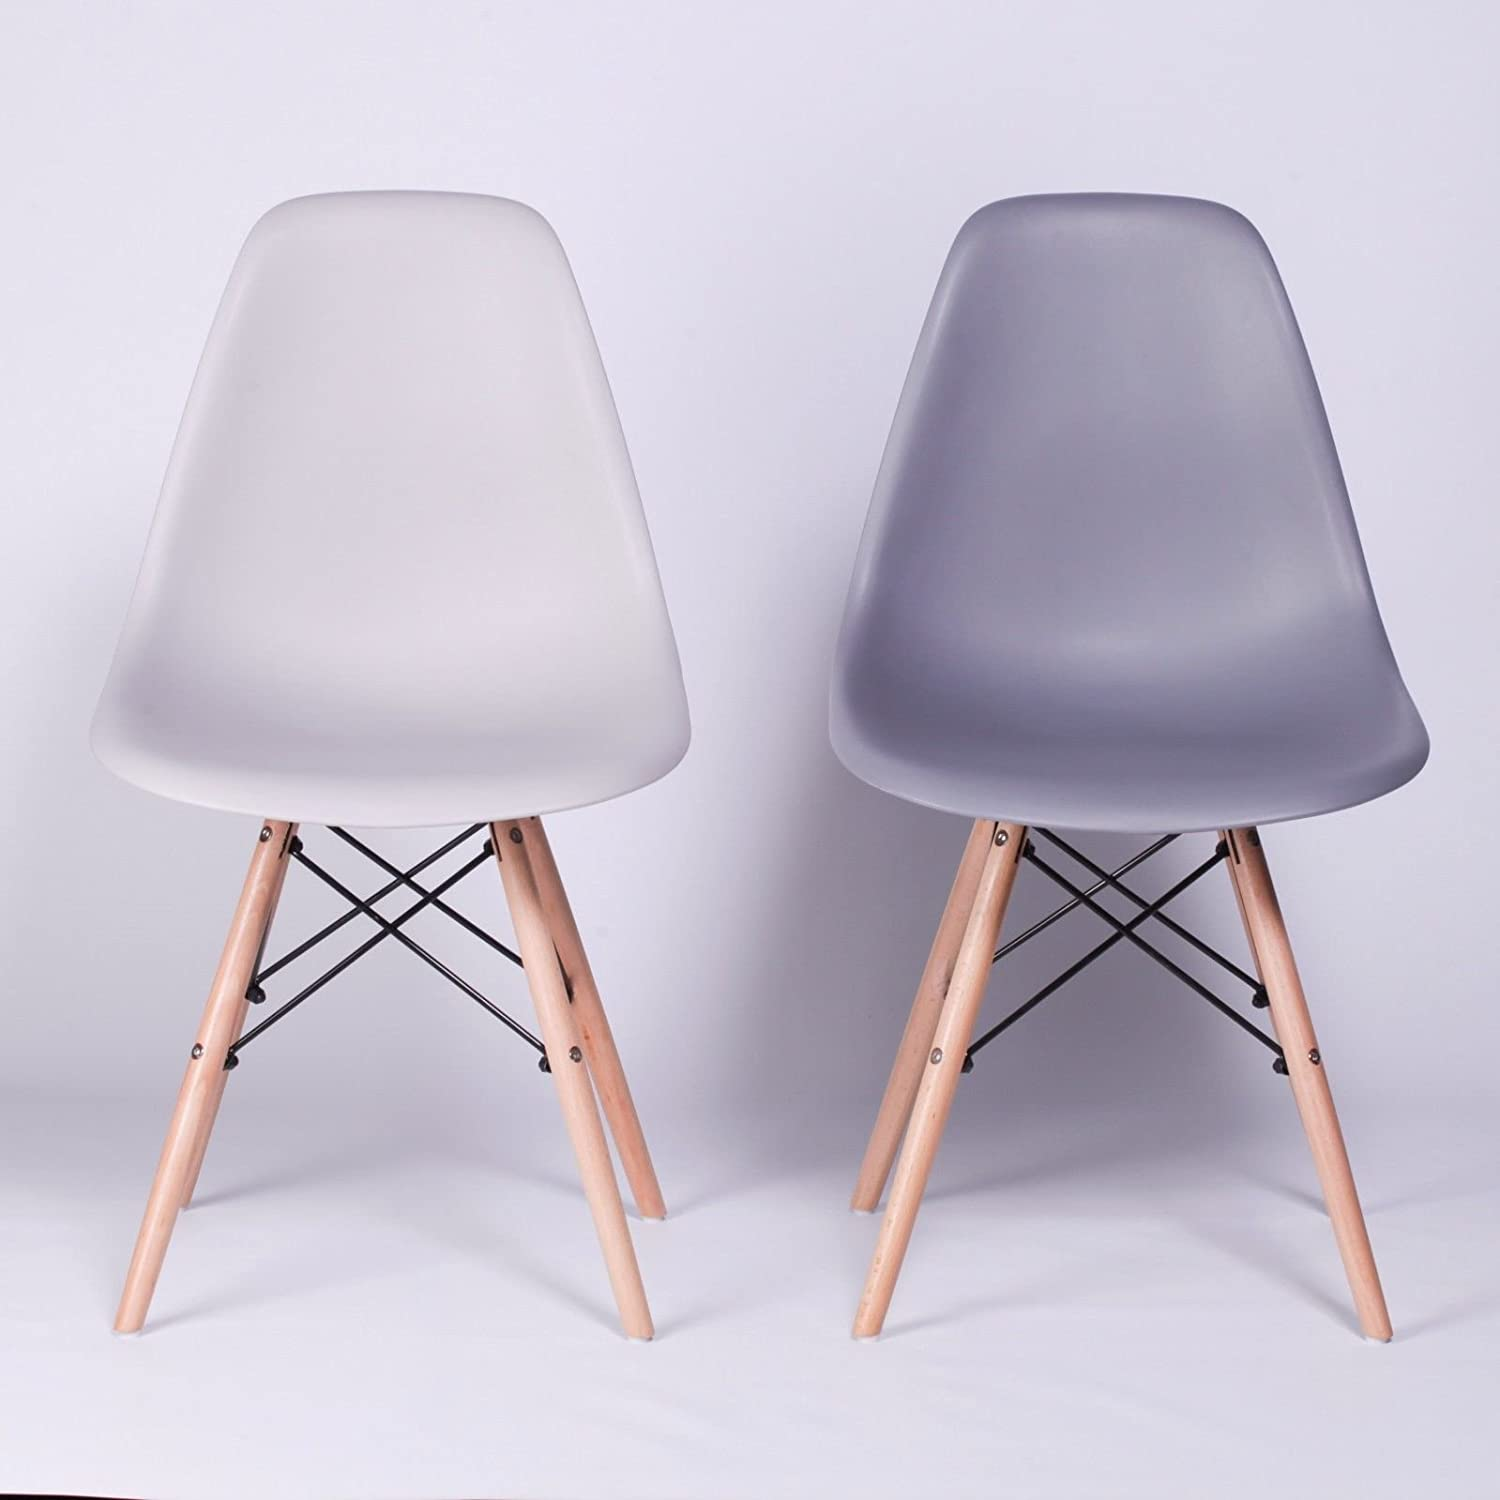 EAMES GREY STYLE EIFFLE DSW RETRO DINING CHAIR RESTAURANT CAFE OFFICE WOOD LEGS (Dark Grey) LMC